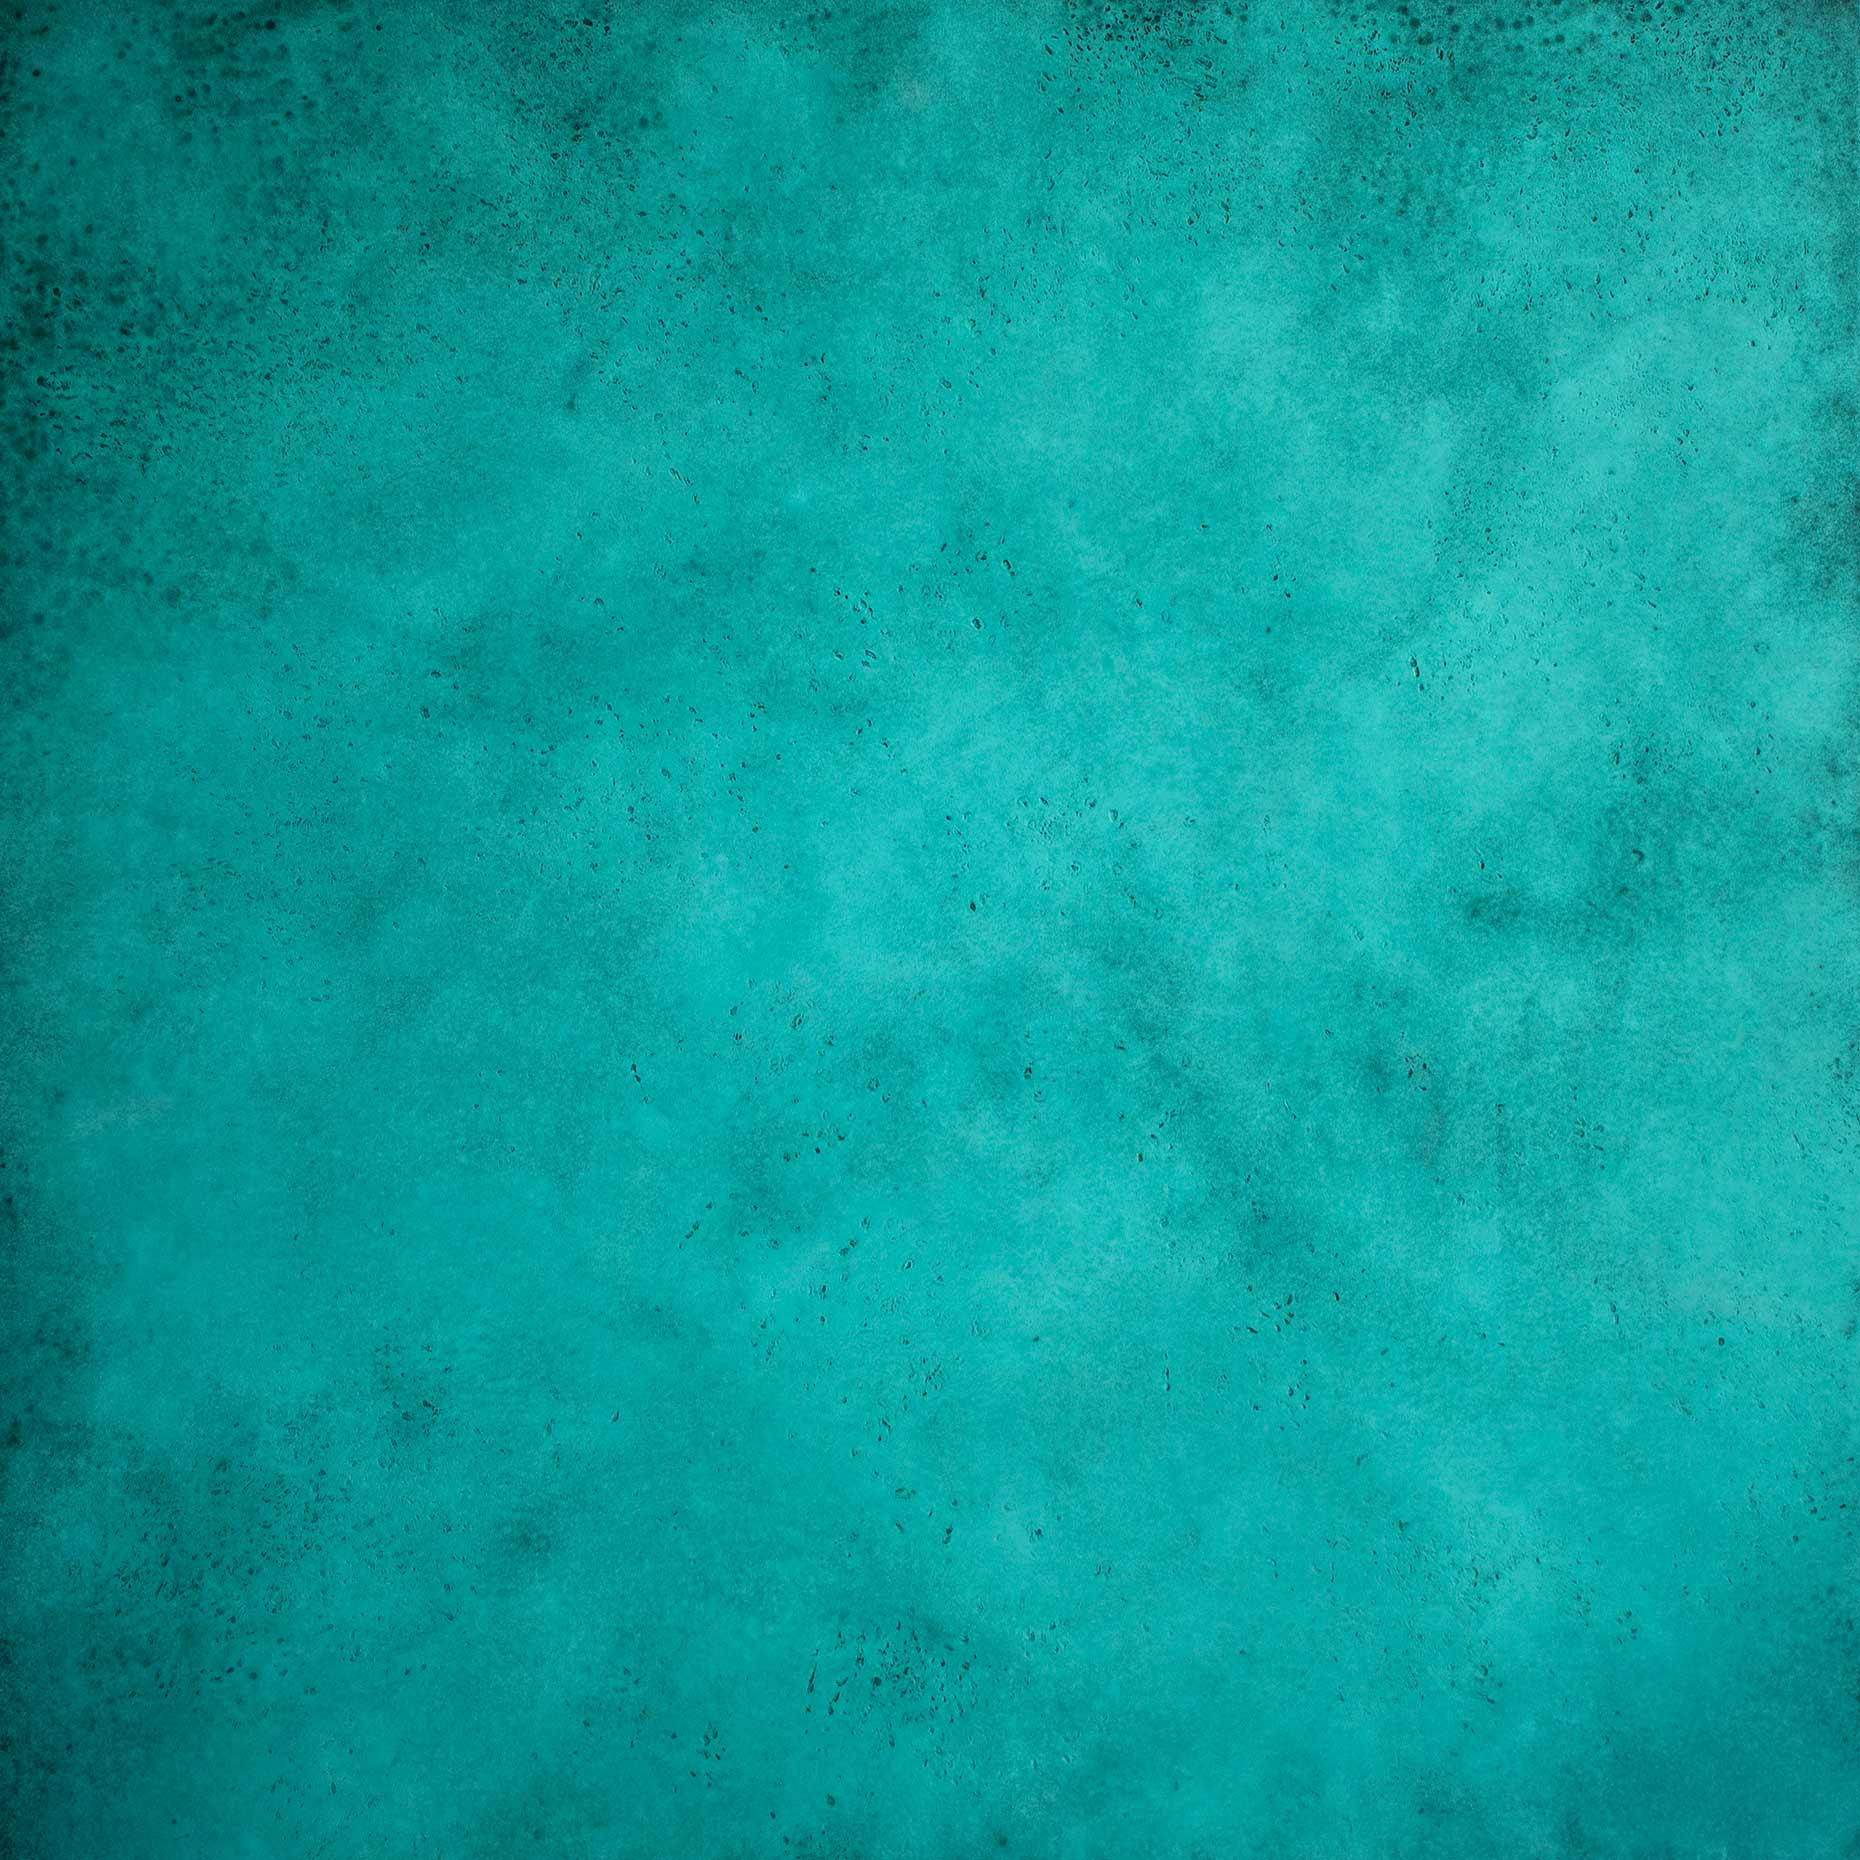 blue green aged stone background